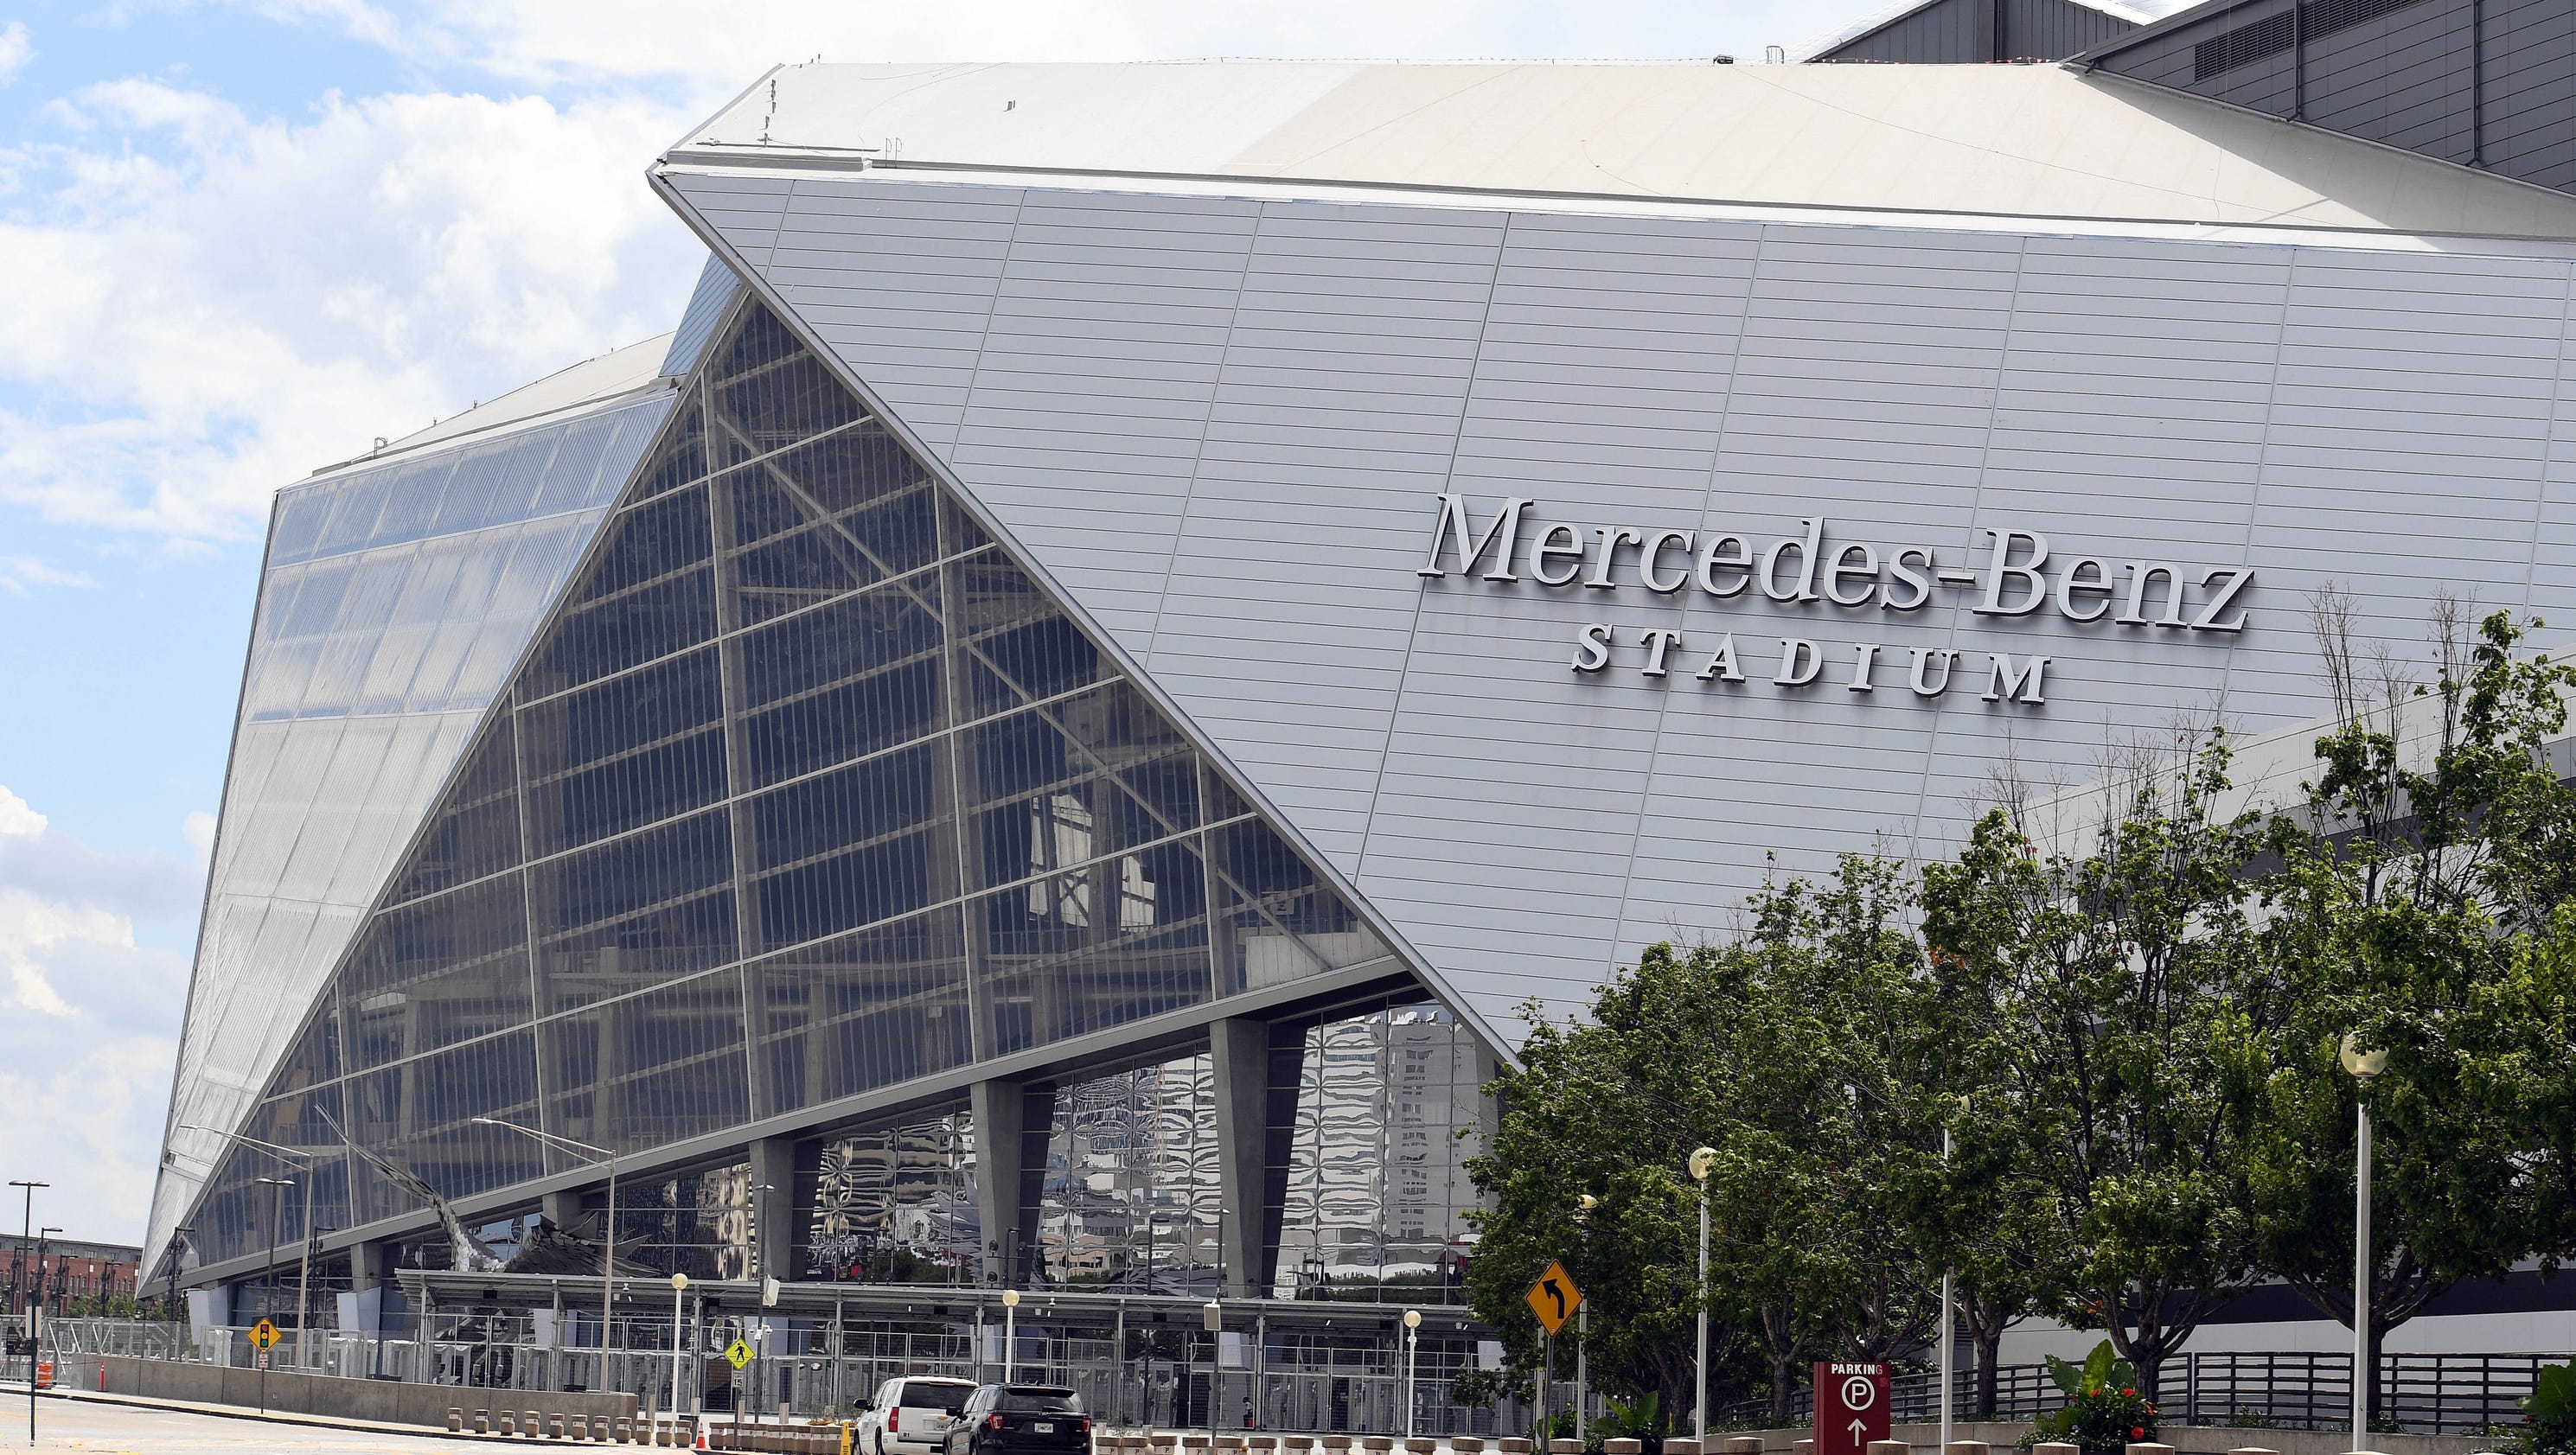 Check out atlanta 39 s new mercedes benz stadium for Who owns mercedes benz stadium